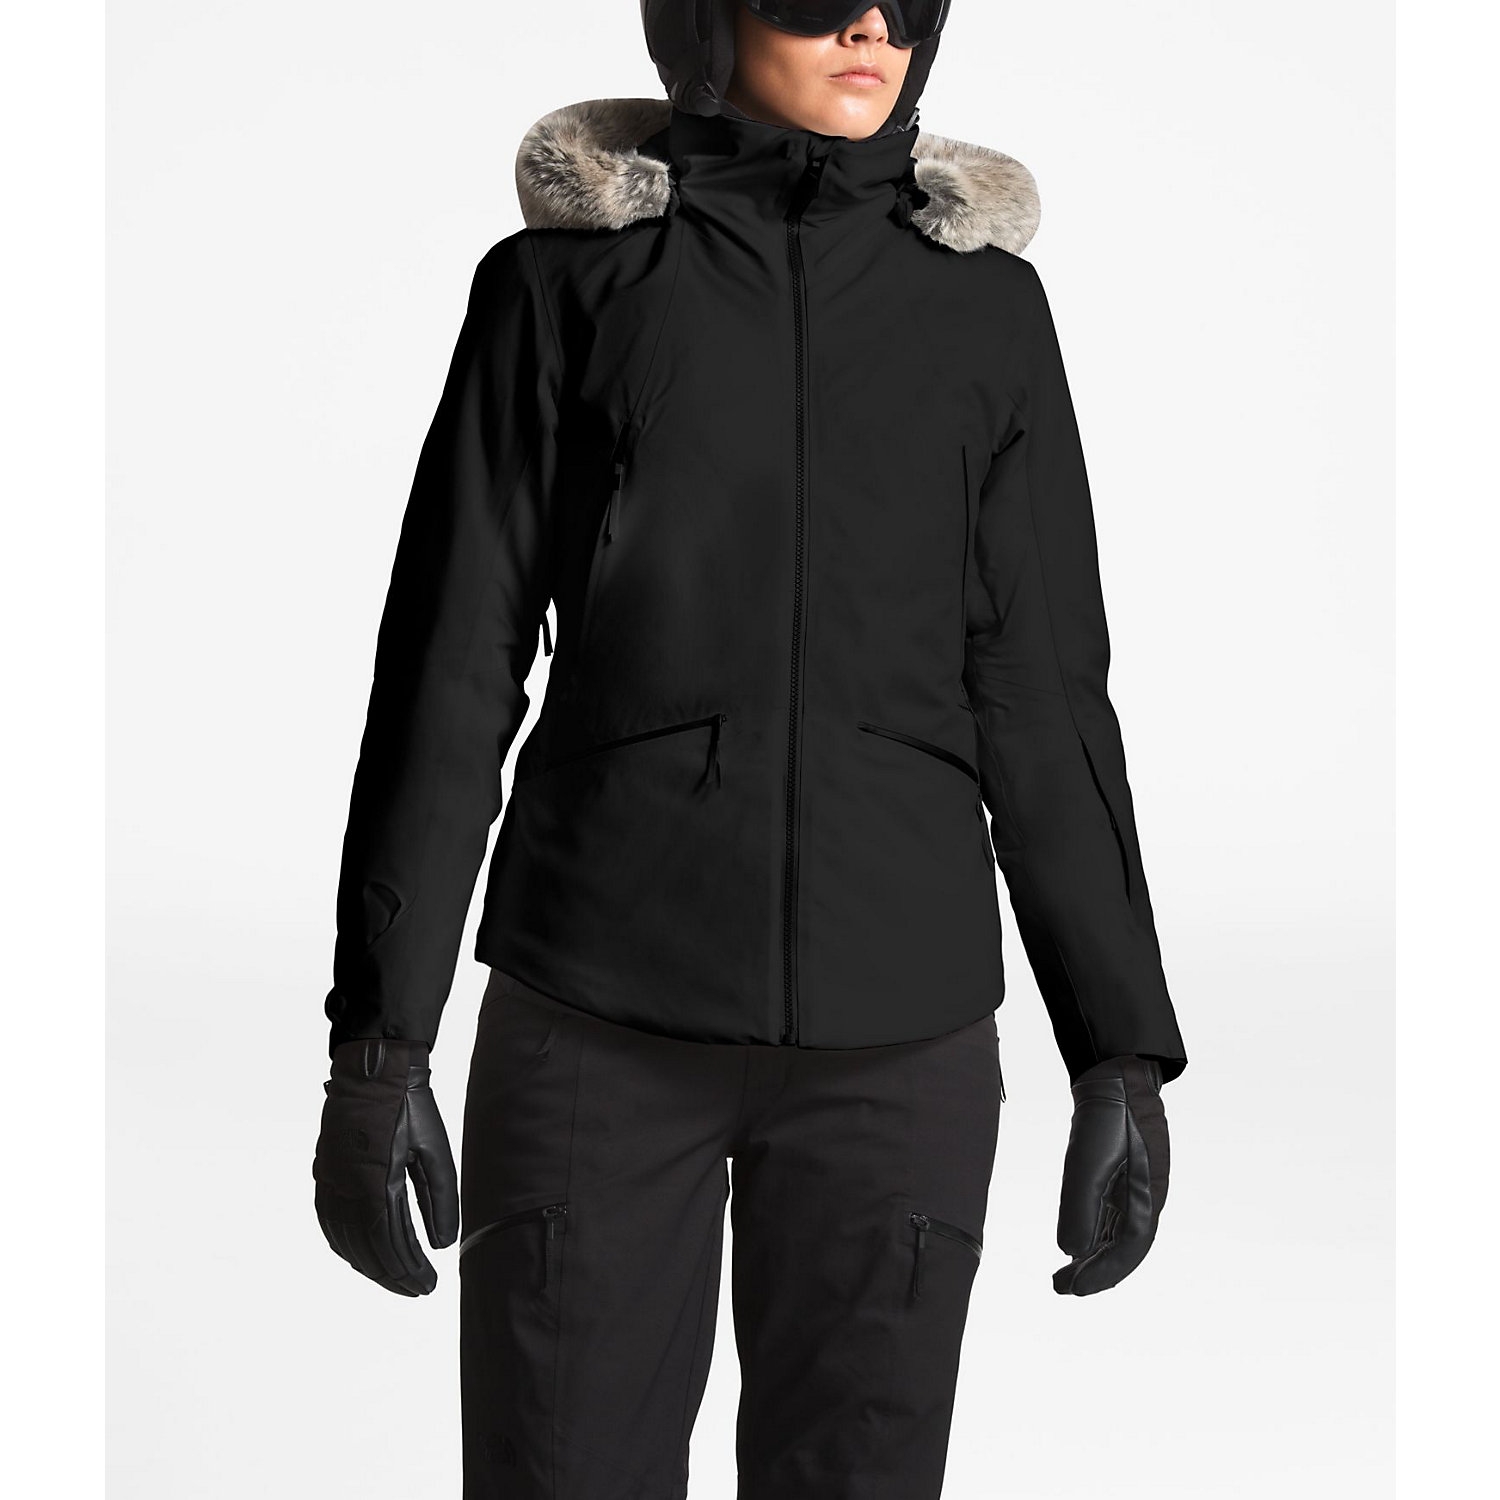 597ca69b5 The North Face Women's Diameter Down Hybrid Jacket